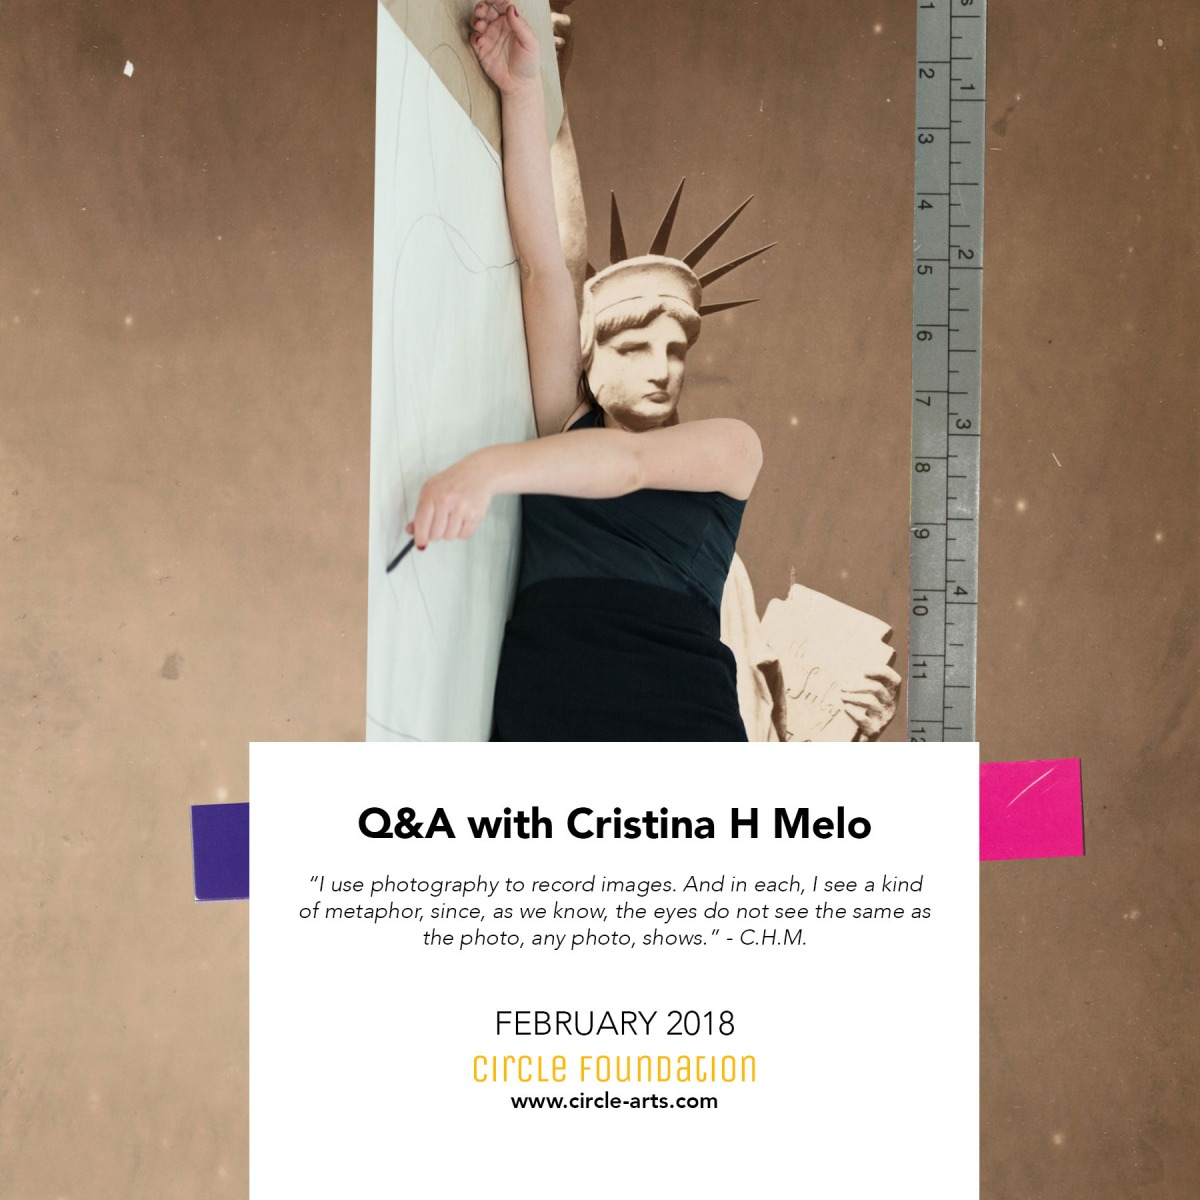 Q&A with Cristina H Melo